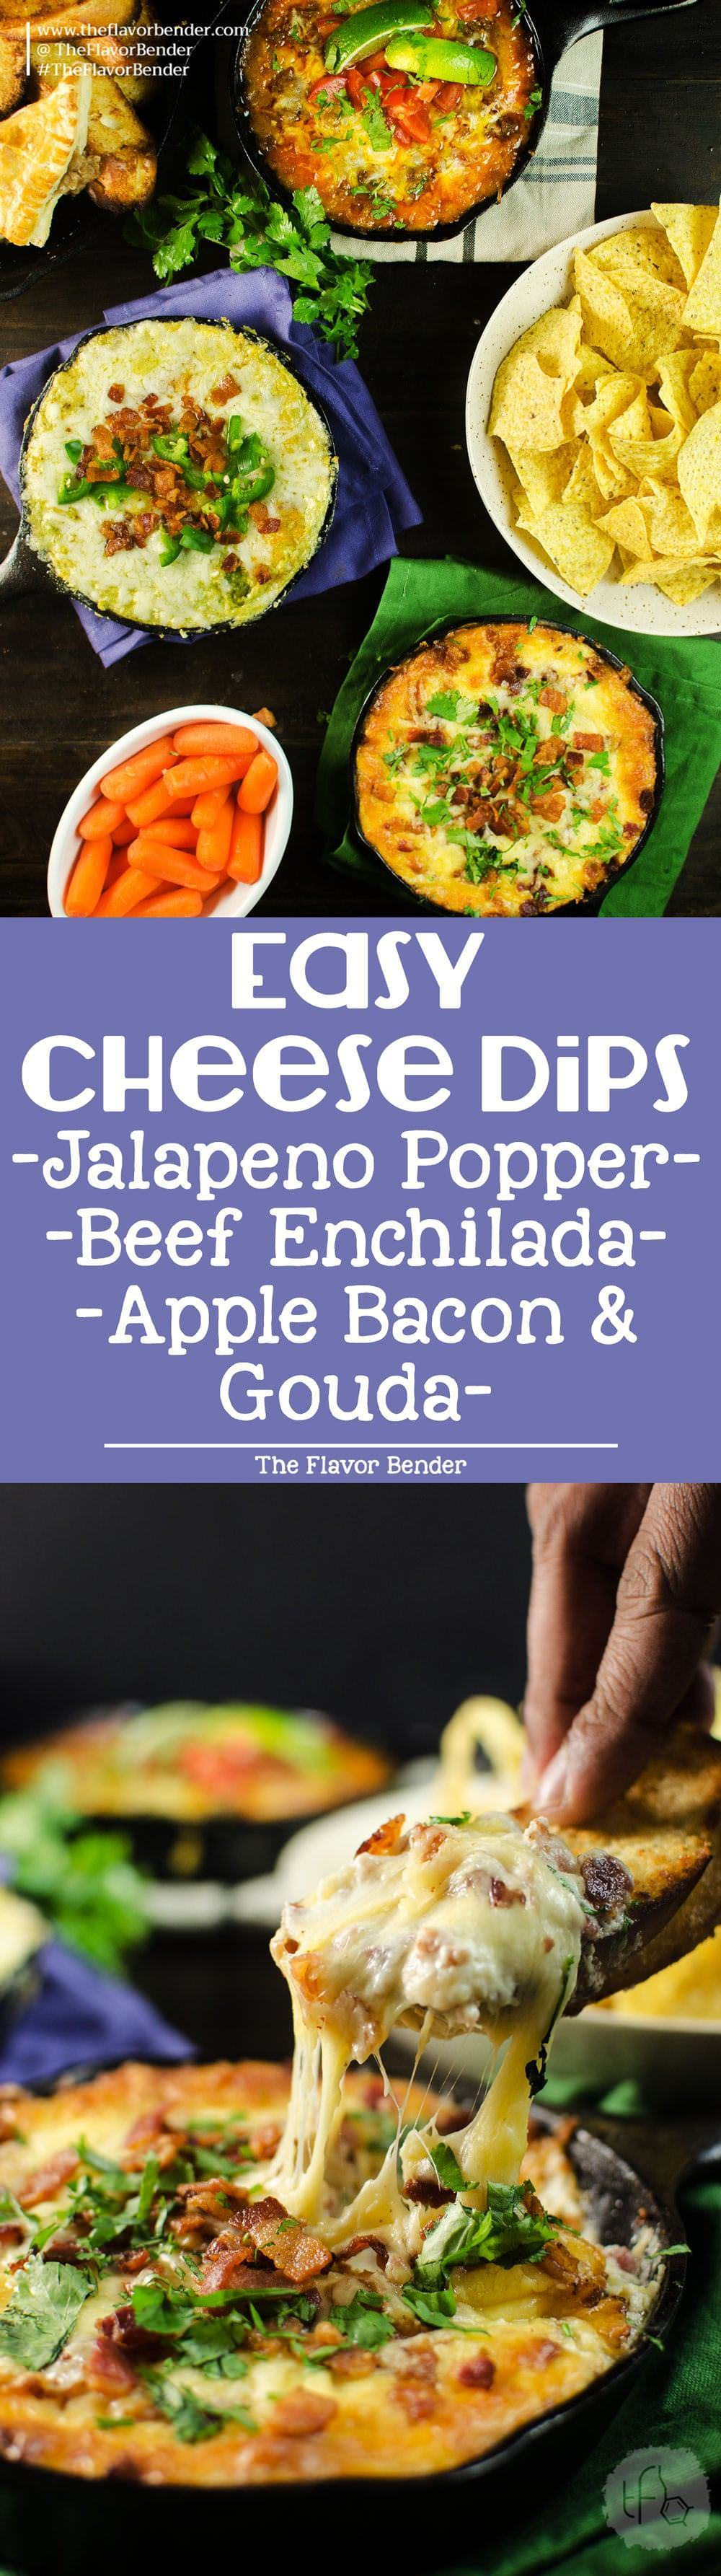 Get your Cheese lovers' party started with these easy Cheesy Dips! - Jalapeno Popper Dip | Cheesy Beef Enchilada Dip | and Apple, Bacon and Gouda Dip.  These Cheese Dips recipes are easy to make, and the gooey melted cheese will win over anyone's heart!